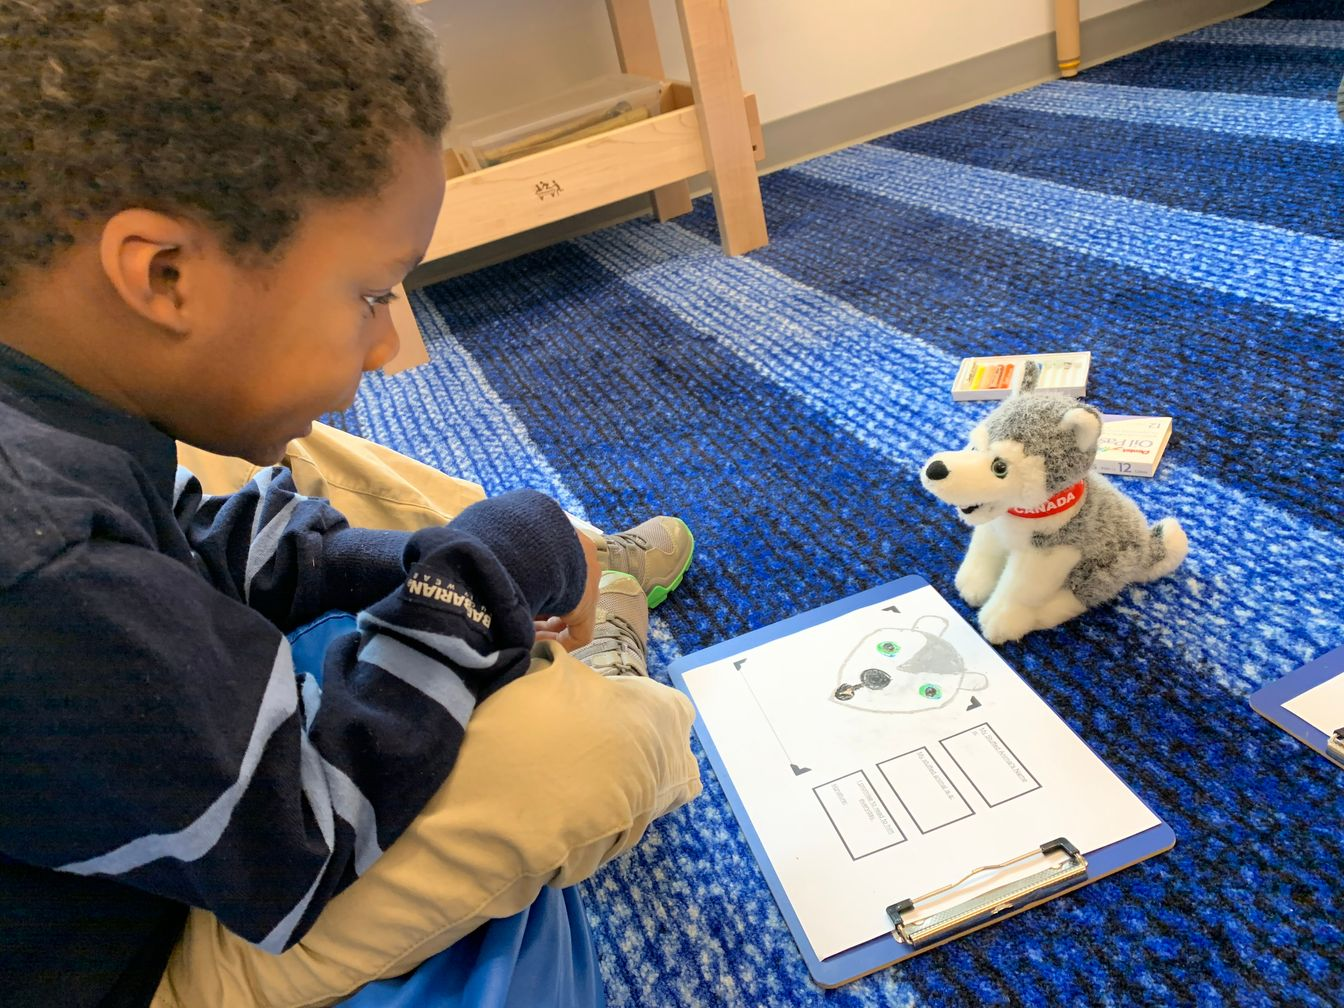 What questions should parents be asking when choosing a pre-K program for their child? Check out our top 5 questions to ask right now!